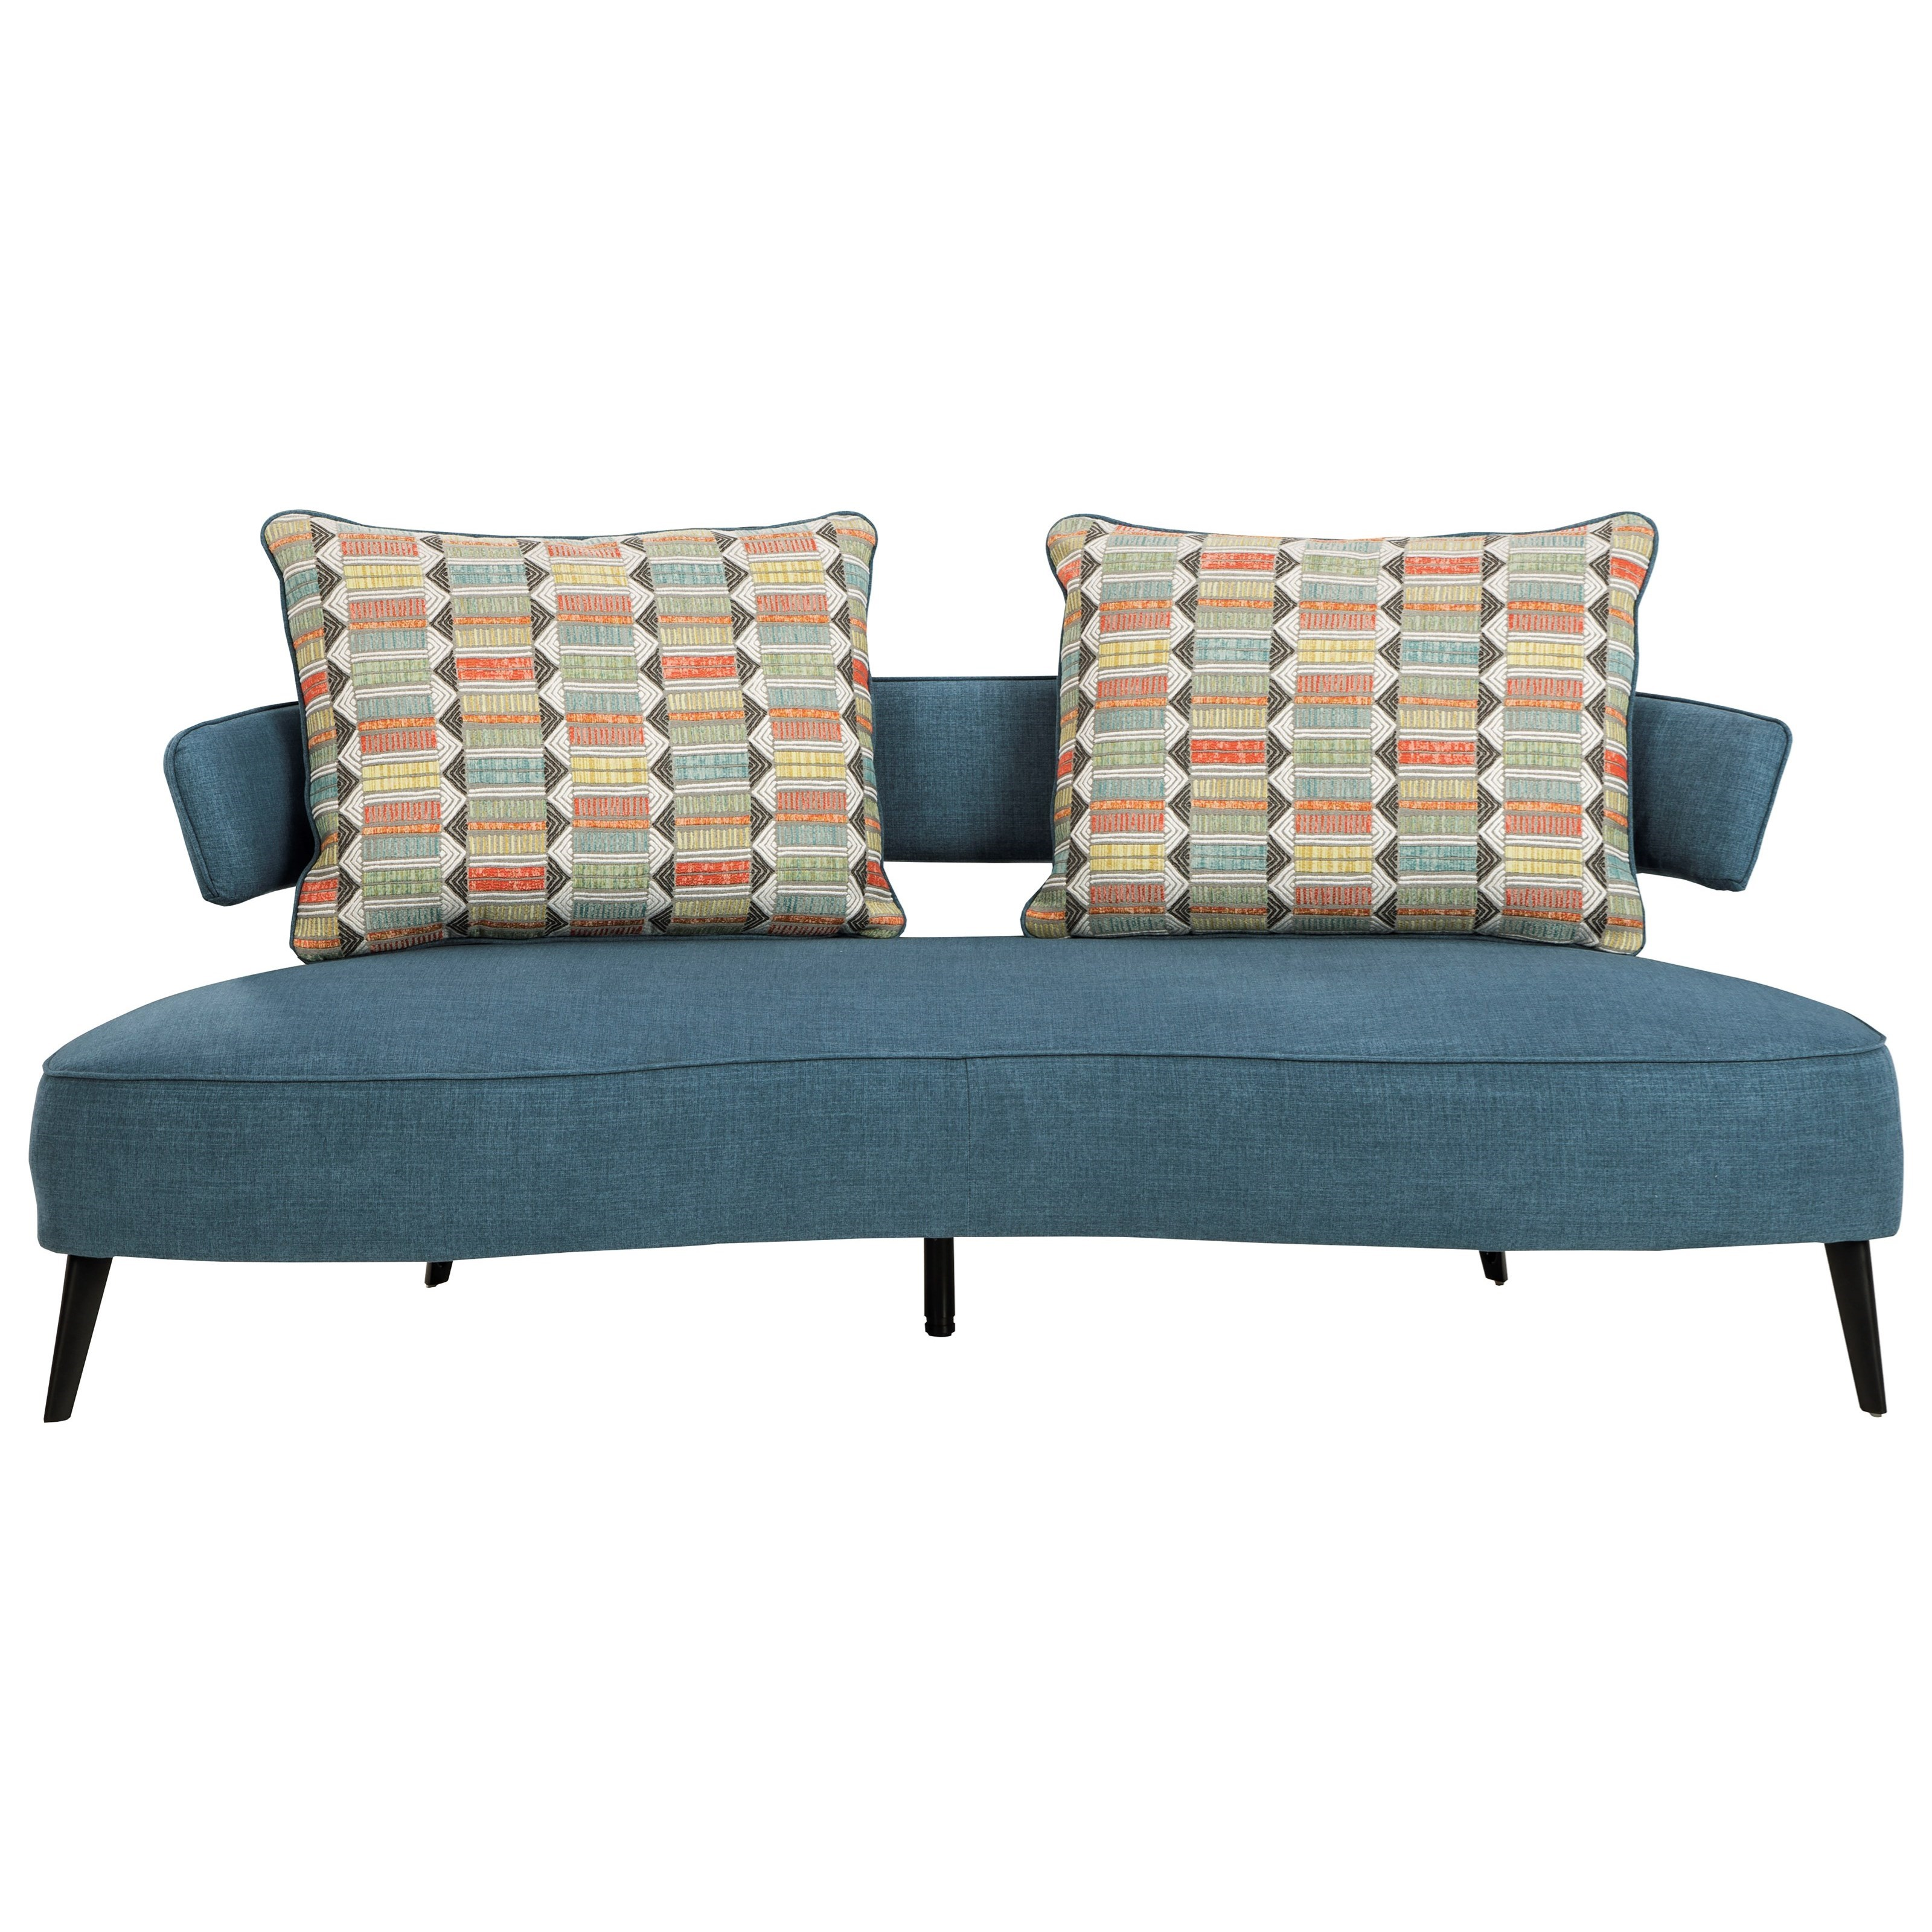 Hollyann Sofa by Signature Design by Ashley at Northeast Factory Direct